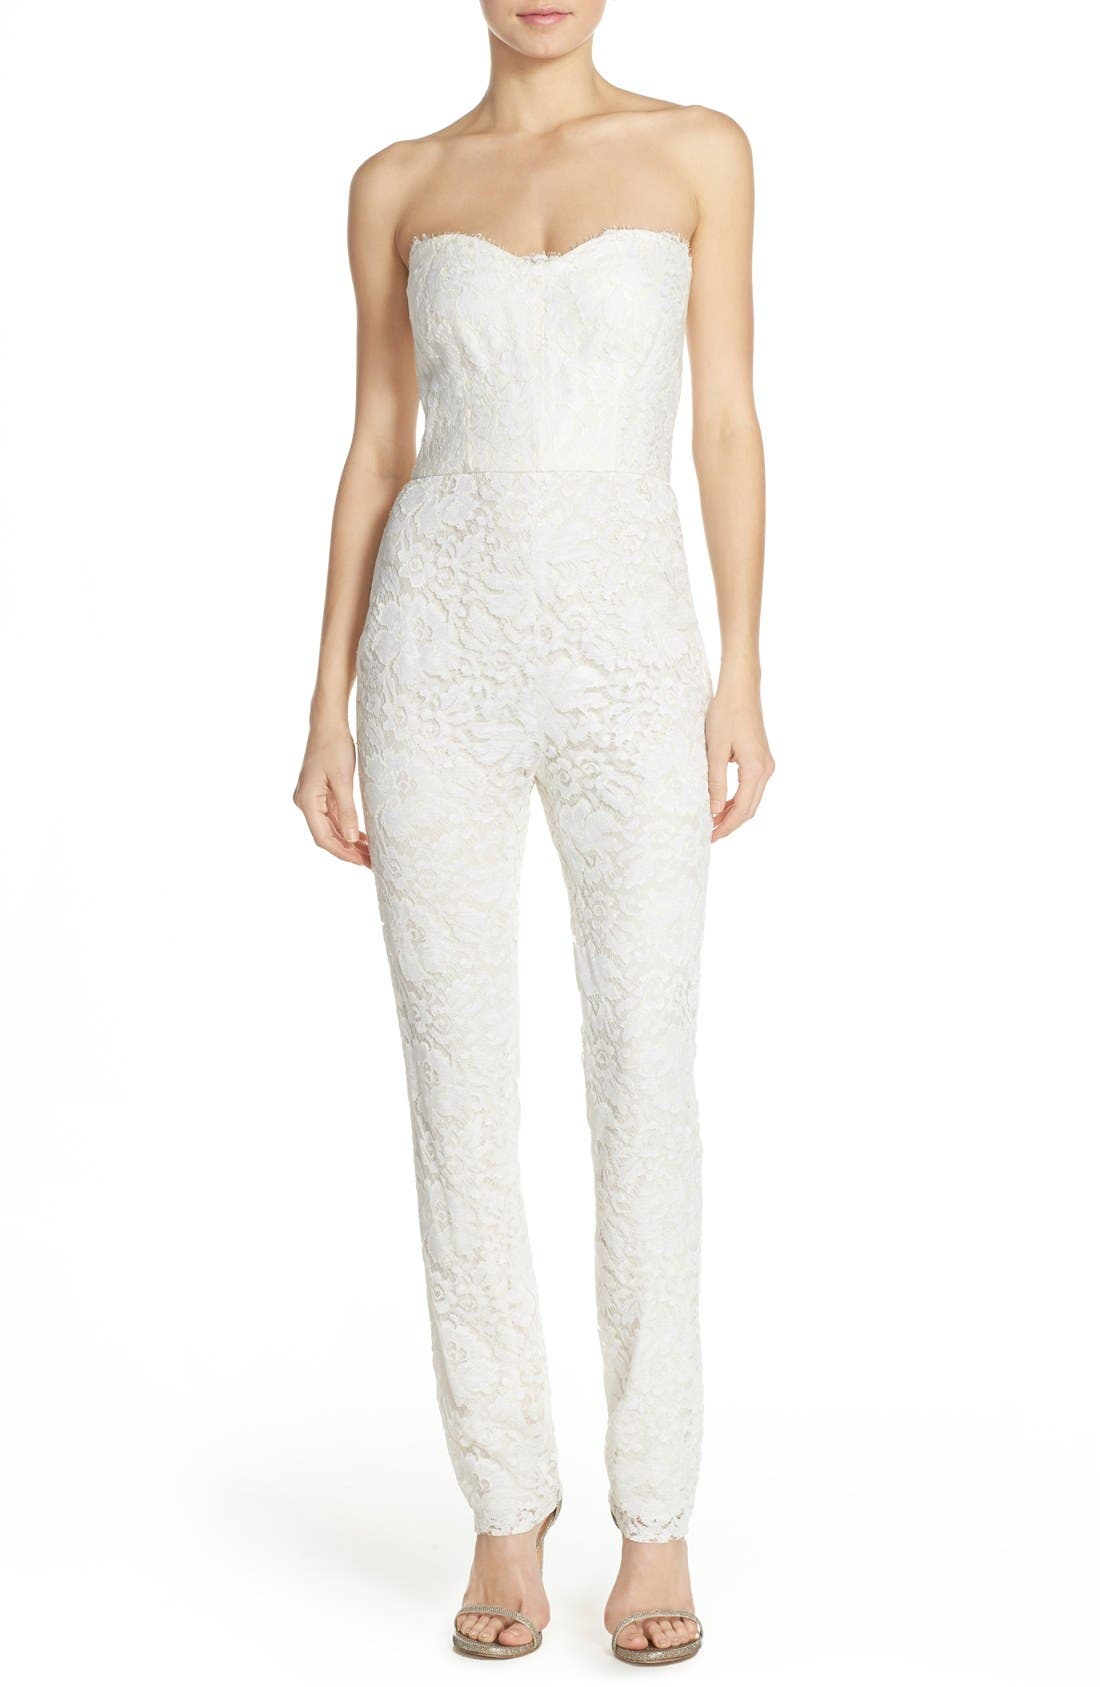 Monique Lhuillier Ready to Wed Strapless Chantilly Lace Jumpsuit,                         Main,                         color, 100